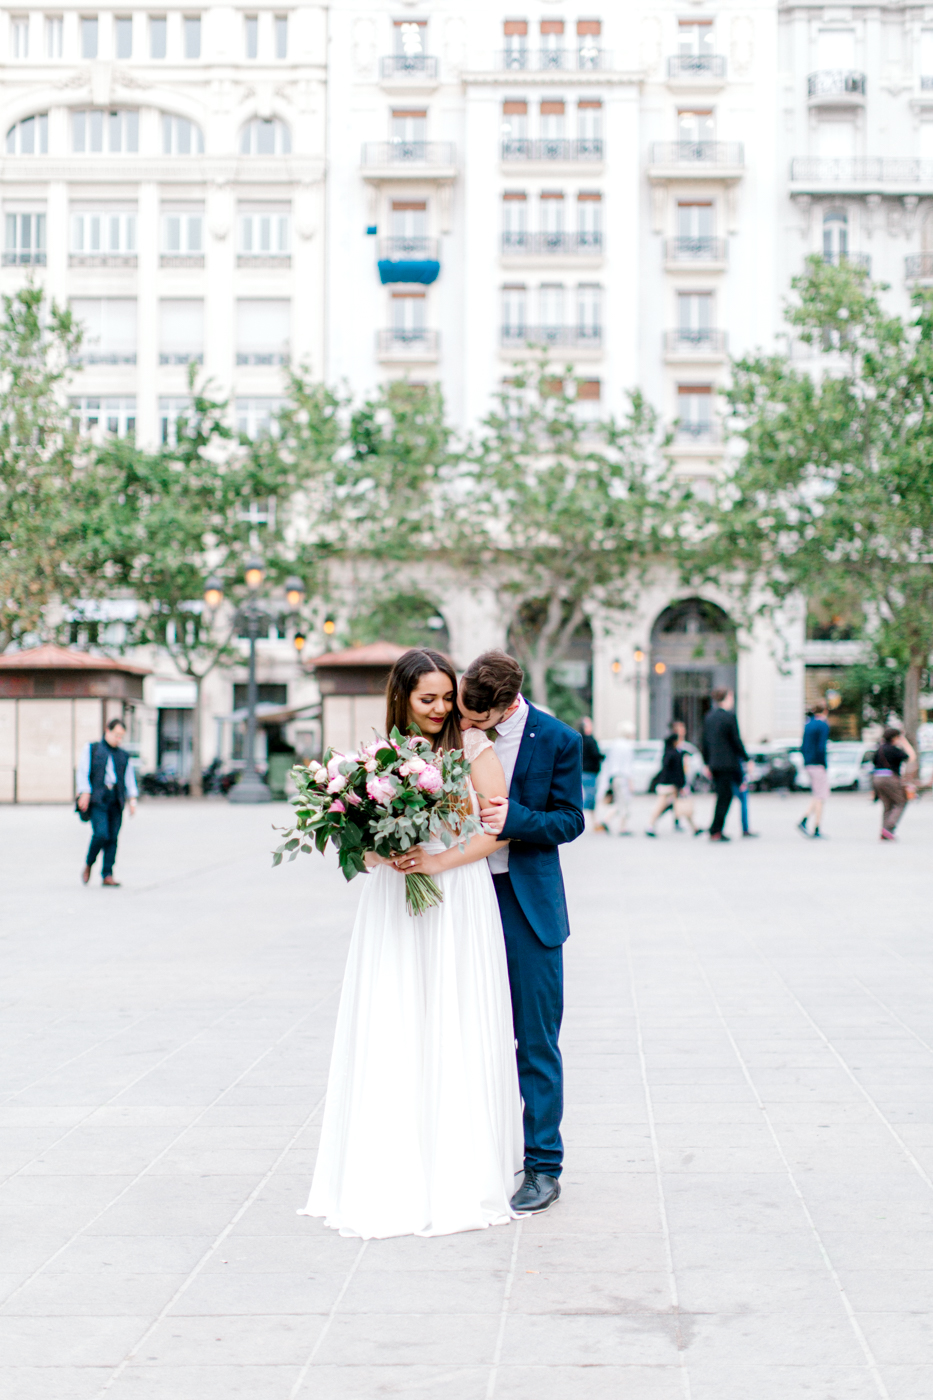 four corners photography valencia wedding photographer rad wedding photographer best spain wedding photographer wedding in spain  (26 of 39).jpg